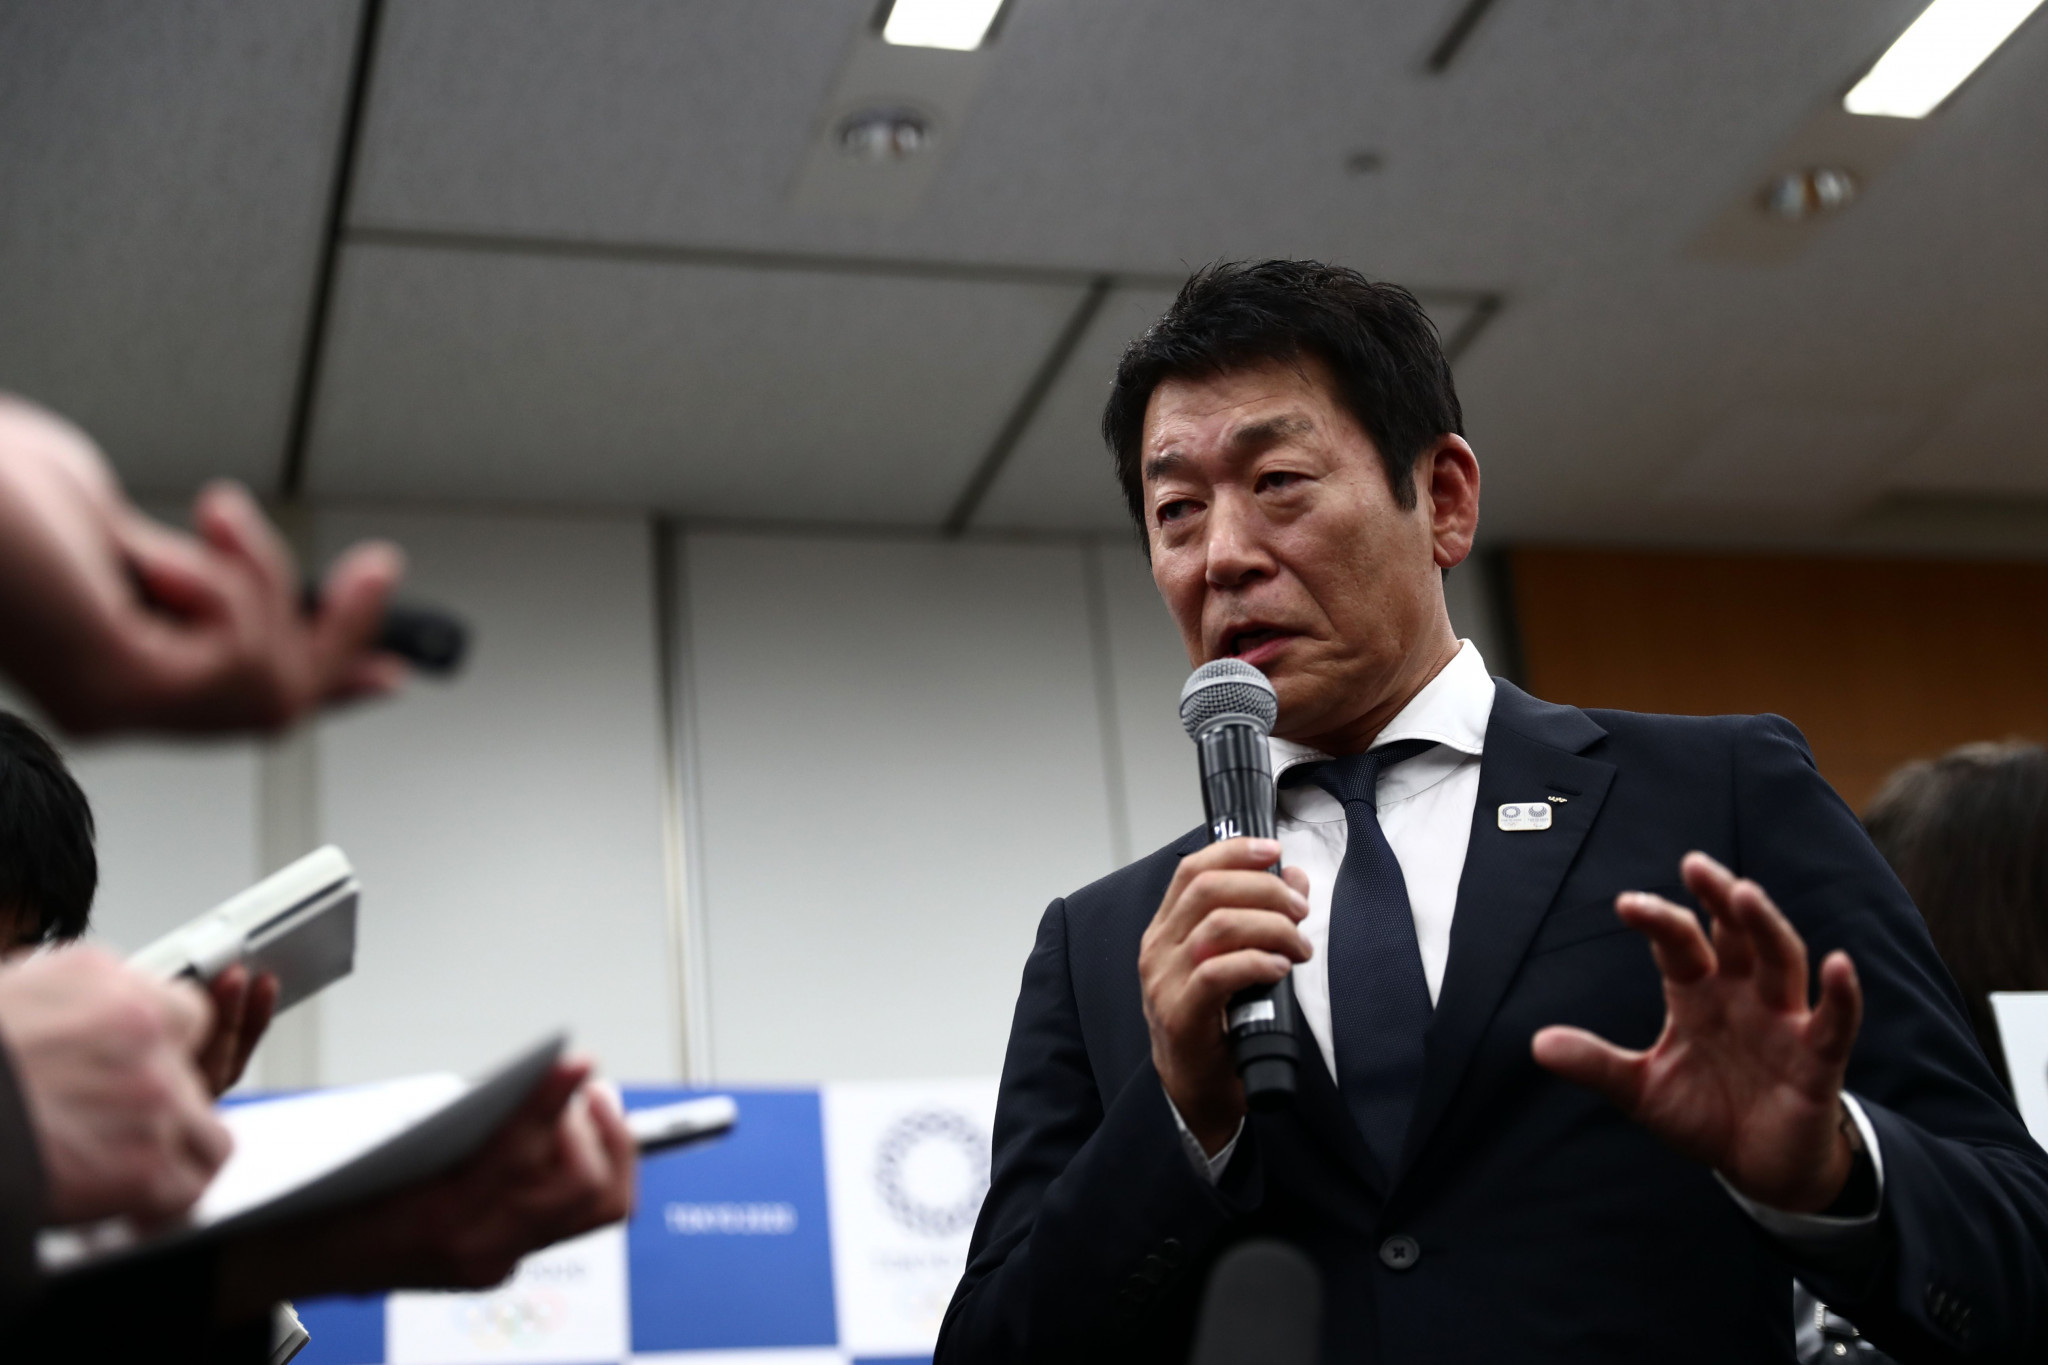 Morinari Watanabe, the current FIG President, is expected to contest his re-election unopposed  ©Getty Images